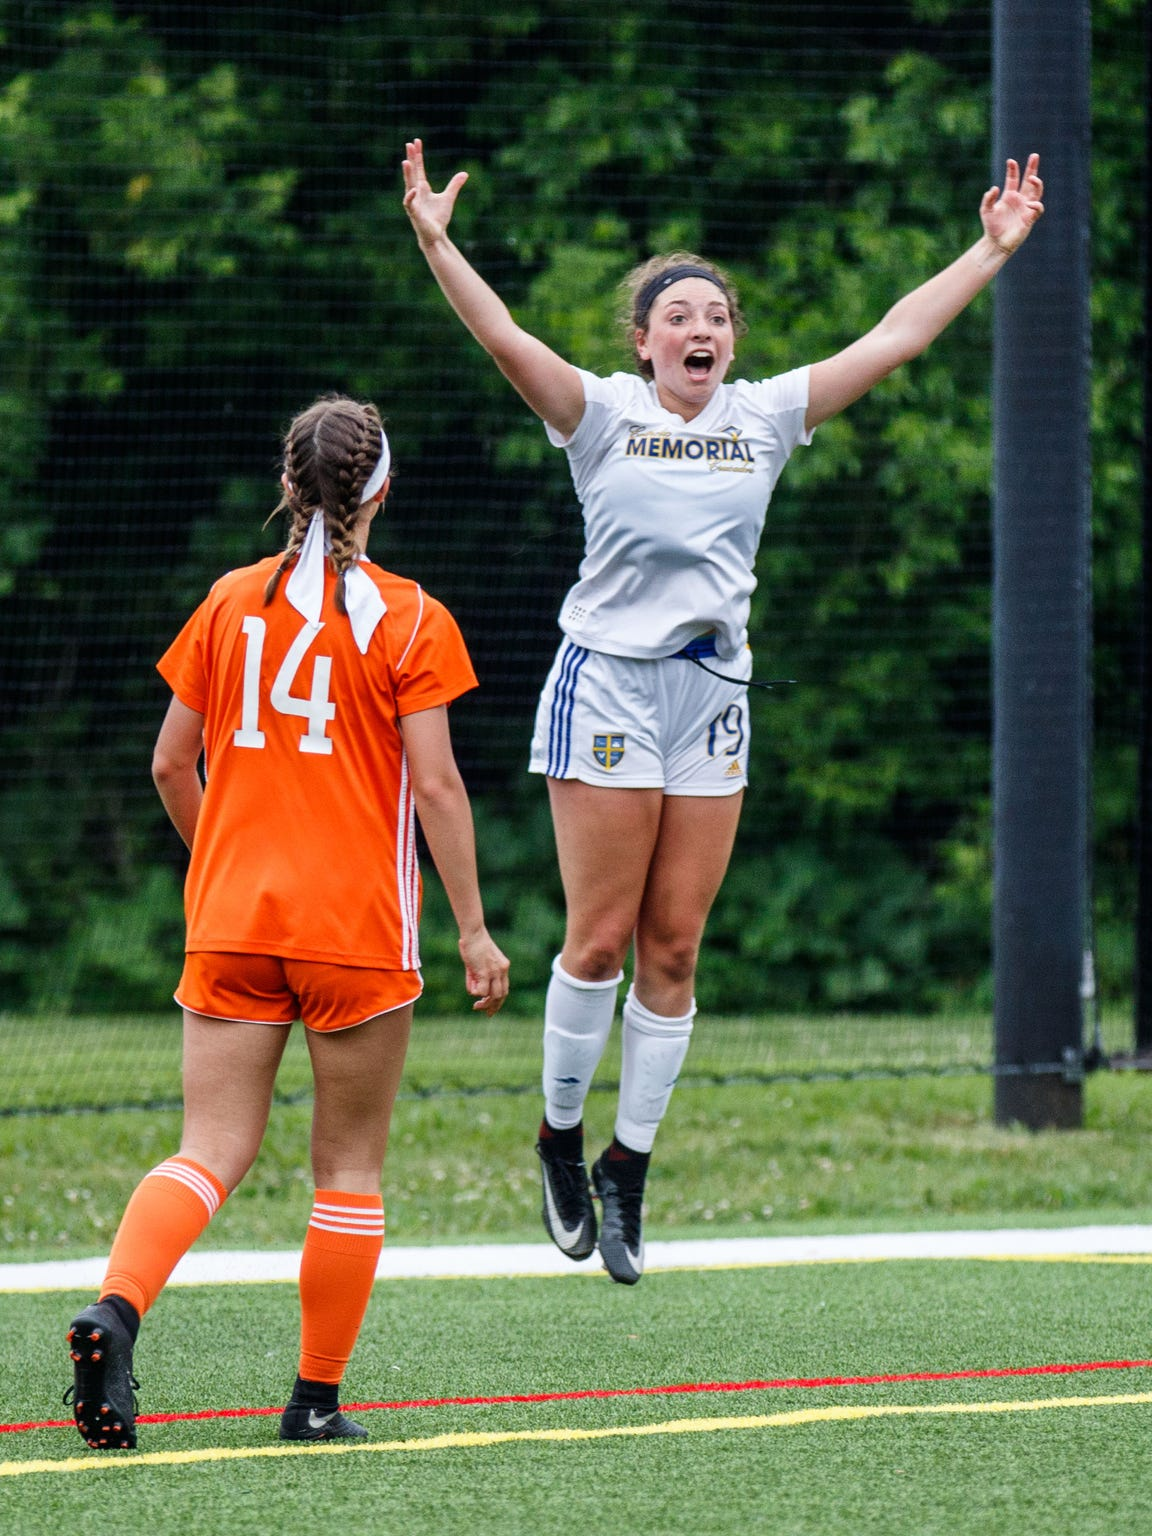 Catholic Memorial junior Shannon McWilliams (19) celebrates